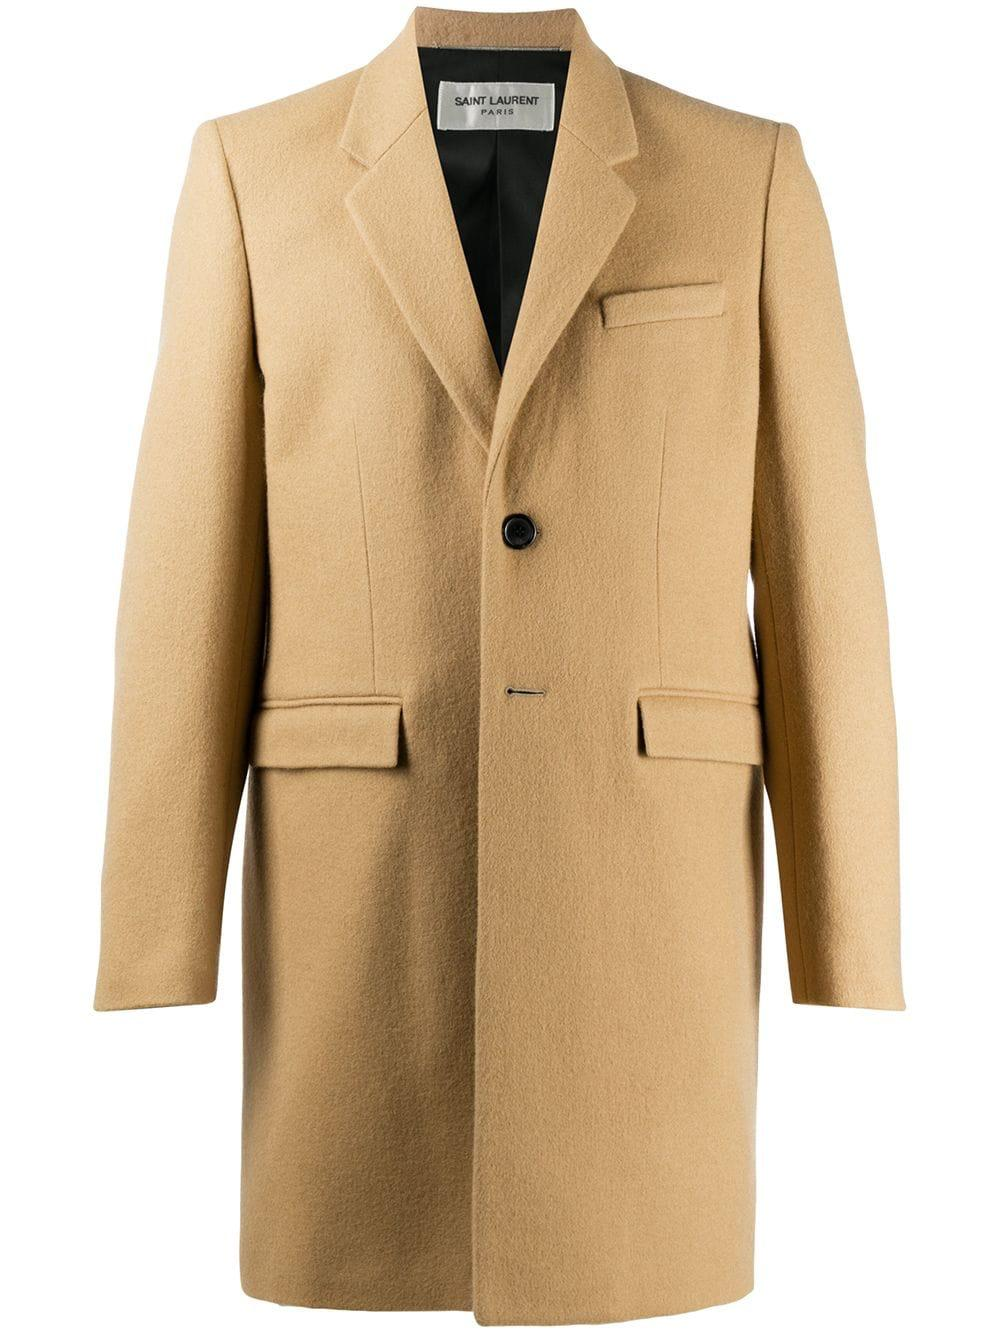 Saint Laurent tailored coat